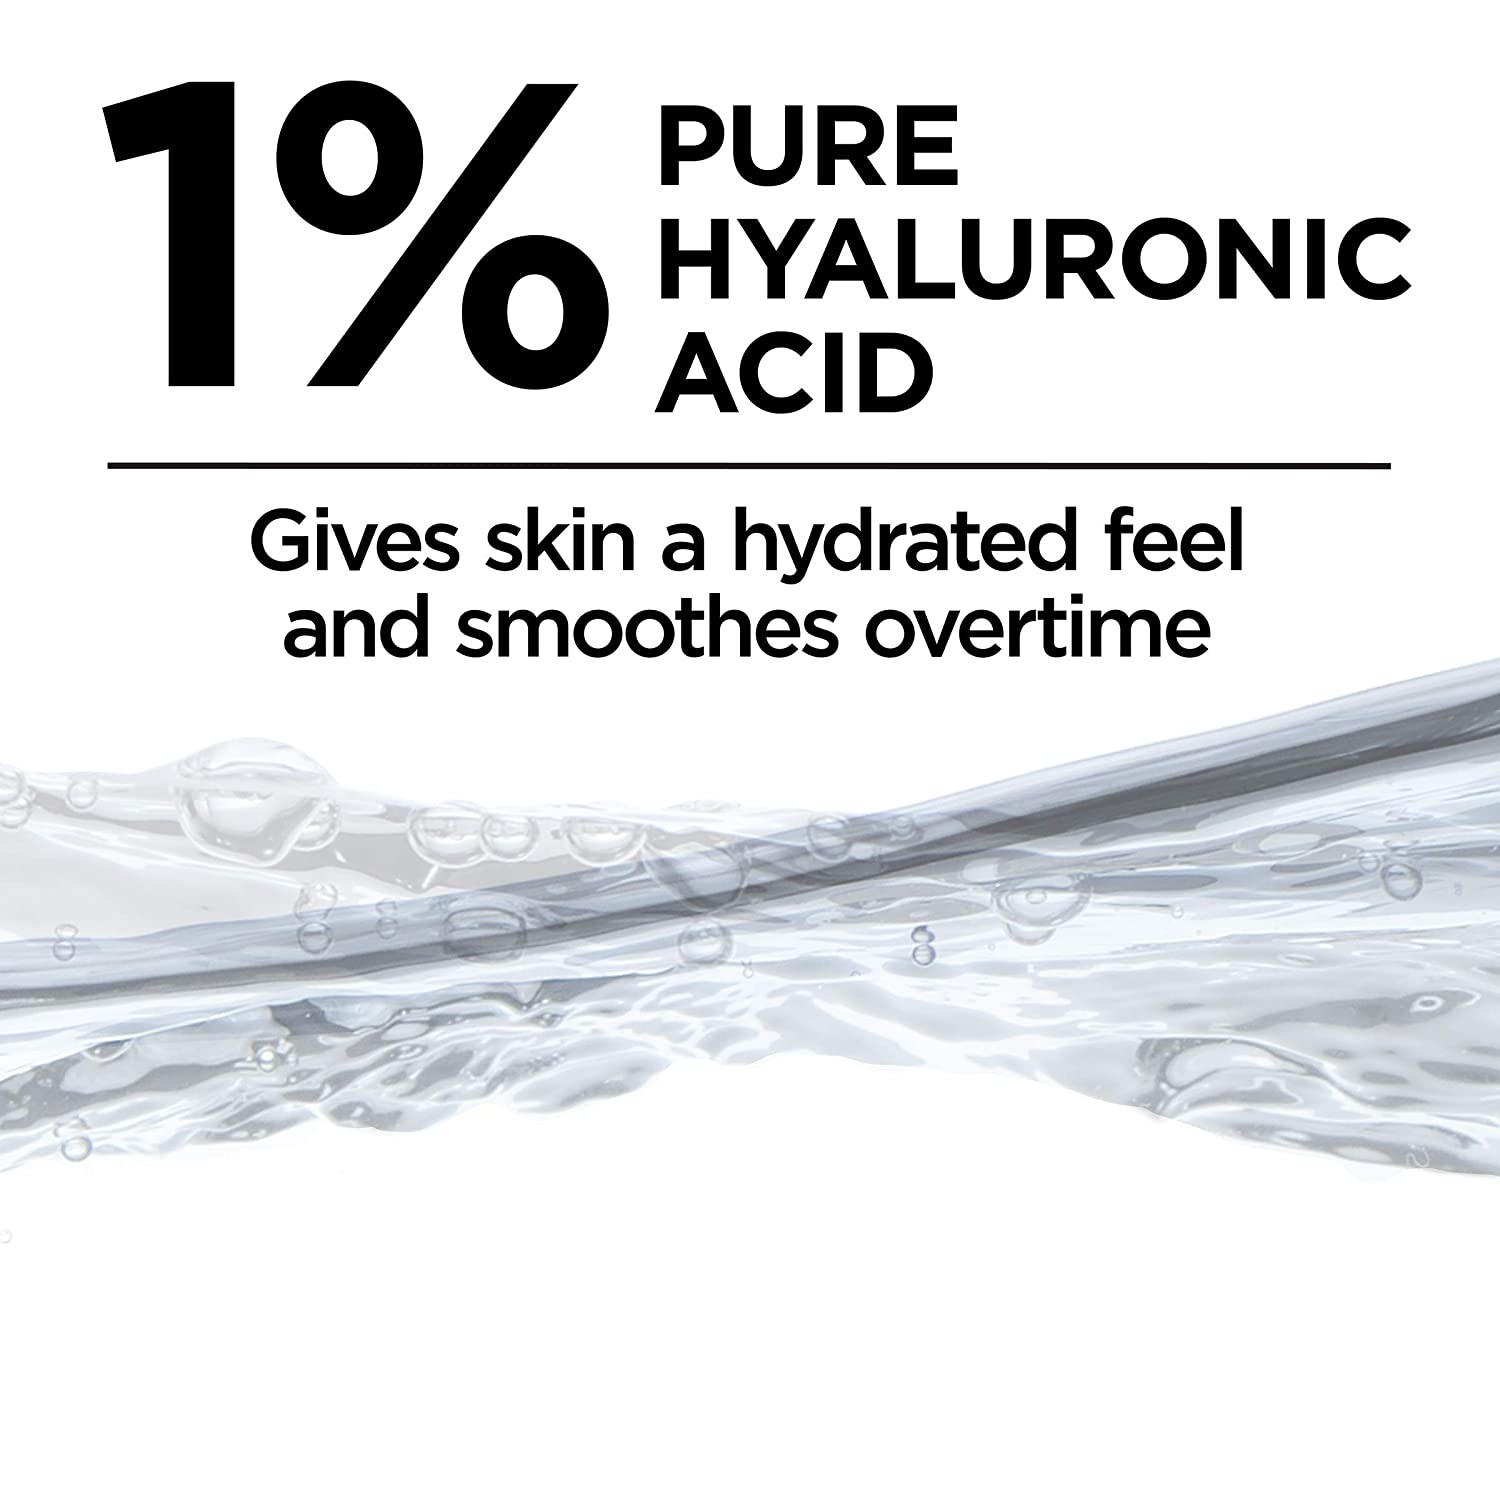 L'Oreal True Match Nude Hyaluronic Tinted Serum